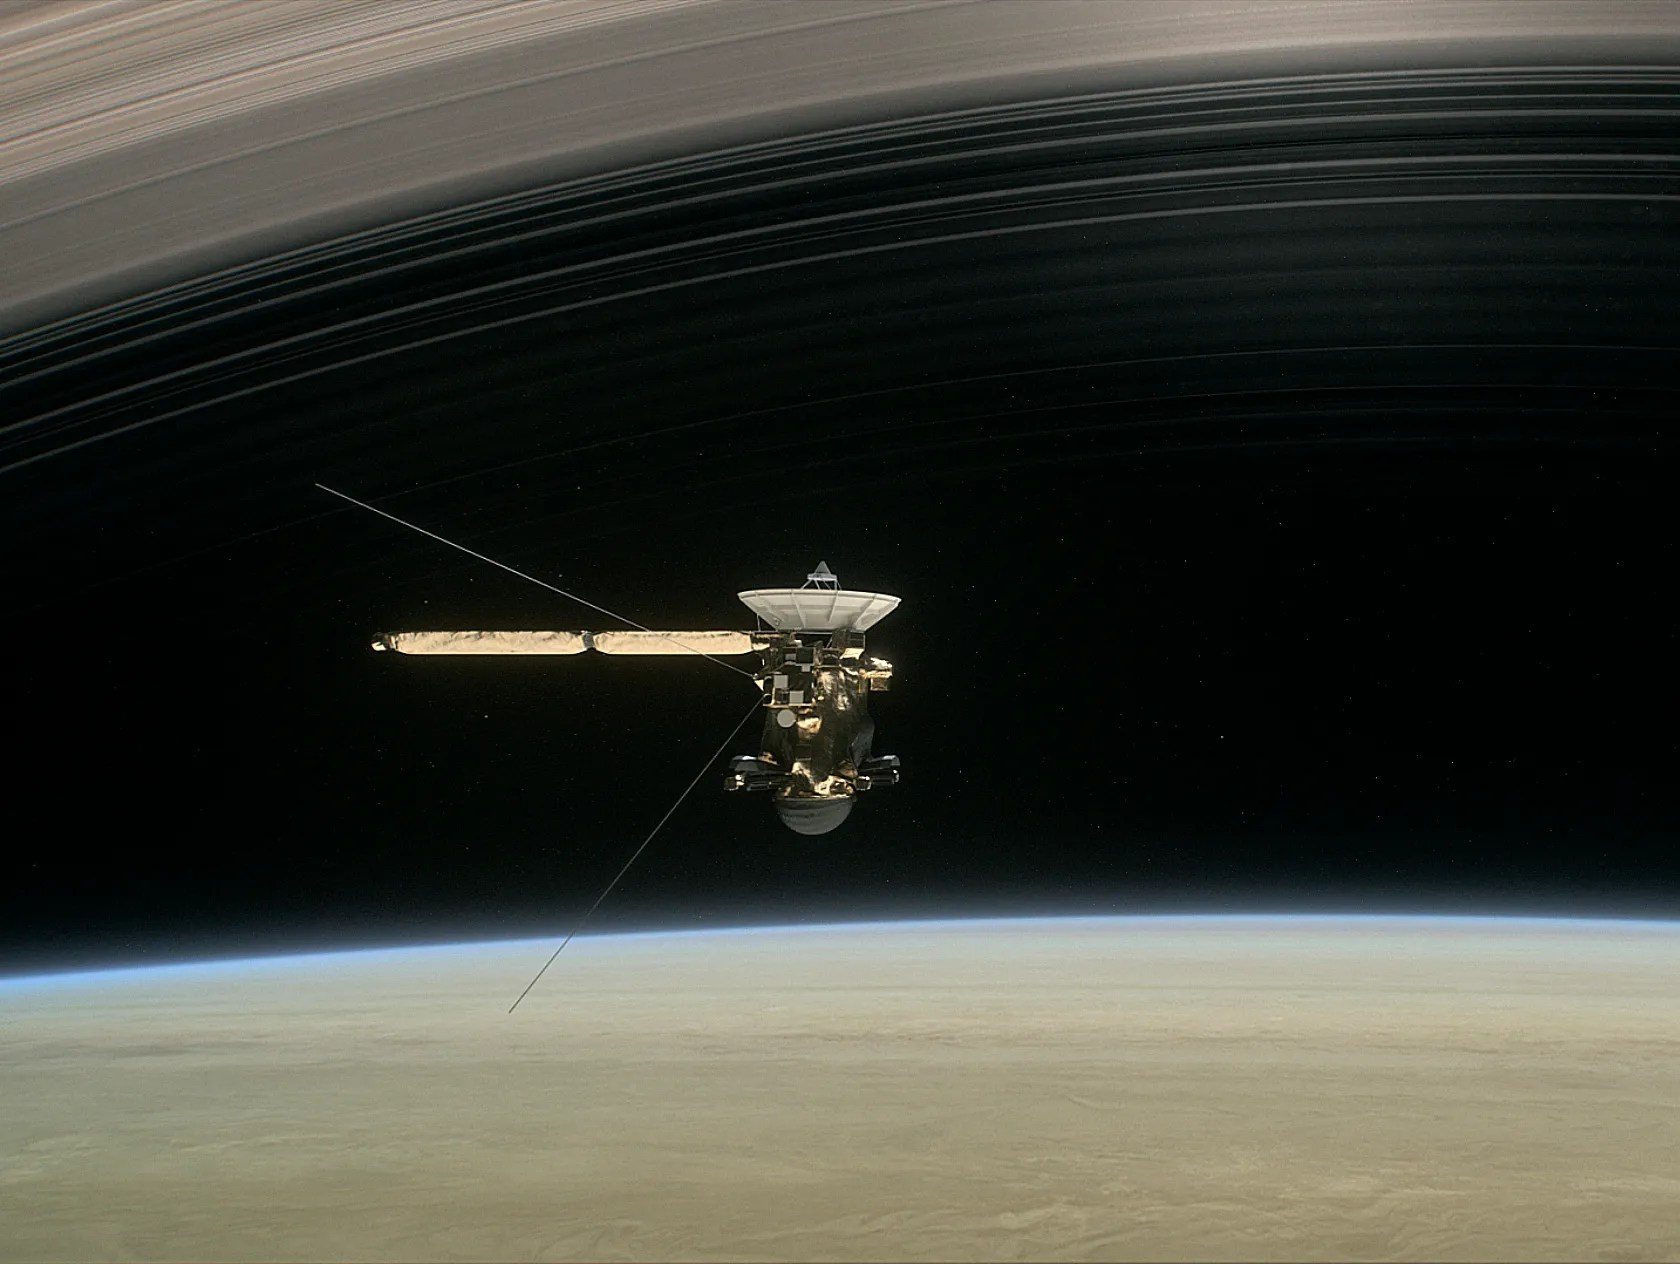 Live stream Cassini spacecraft sends final images before